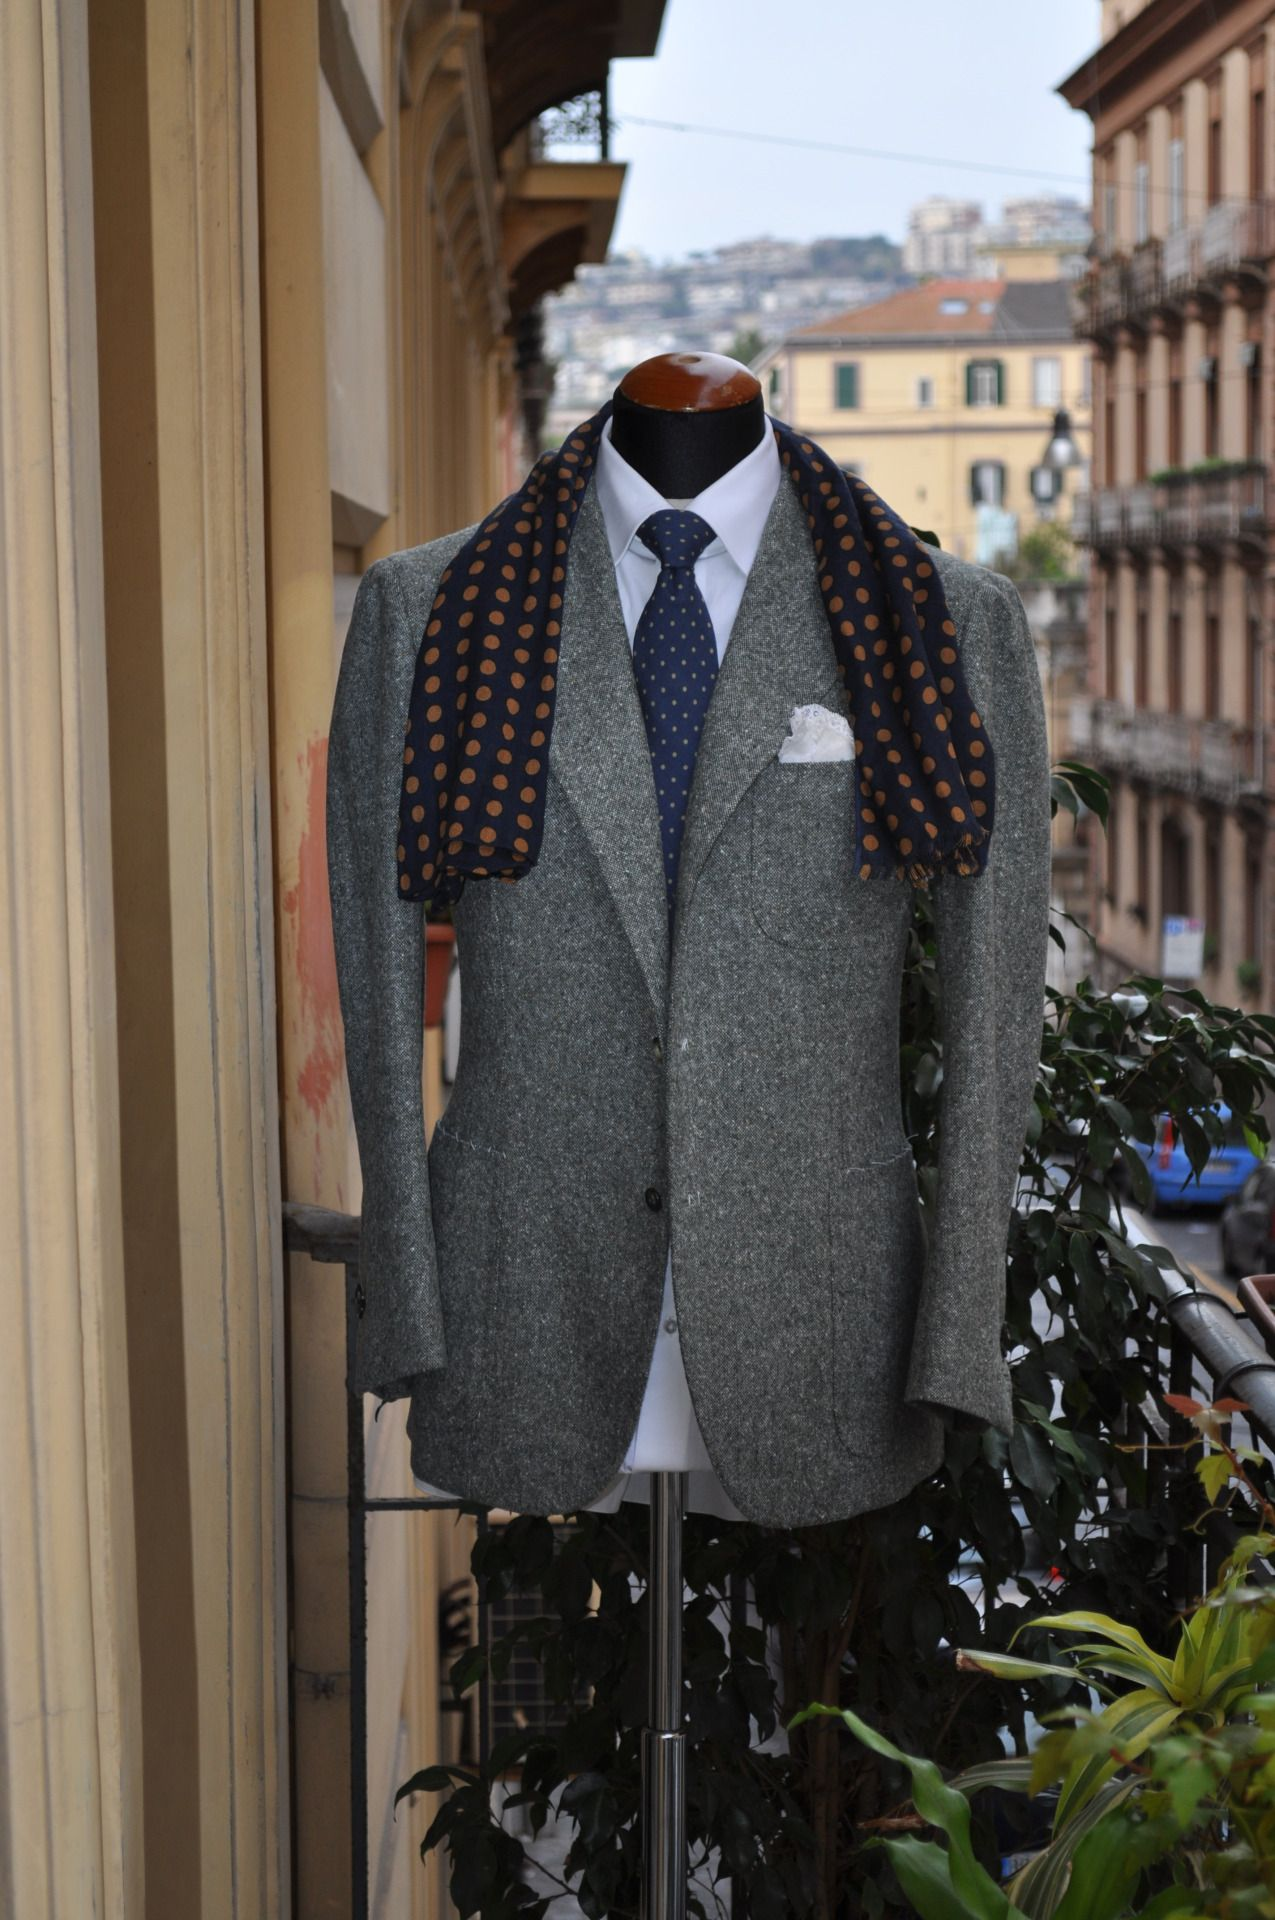 dbca4c35a05c Neapolitan Jacket with Loro Piana Grey donegal fabric